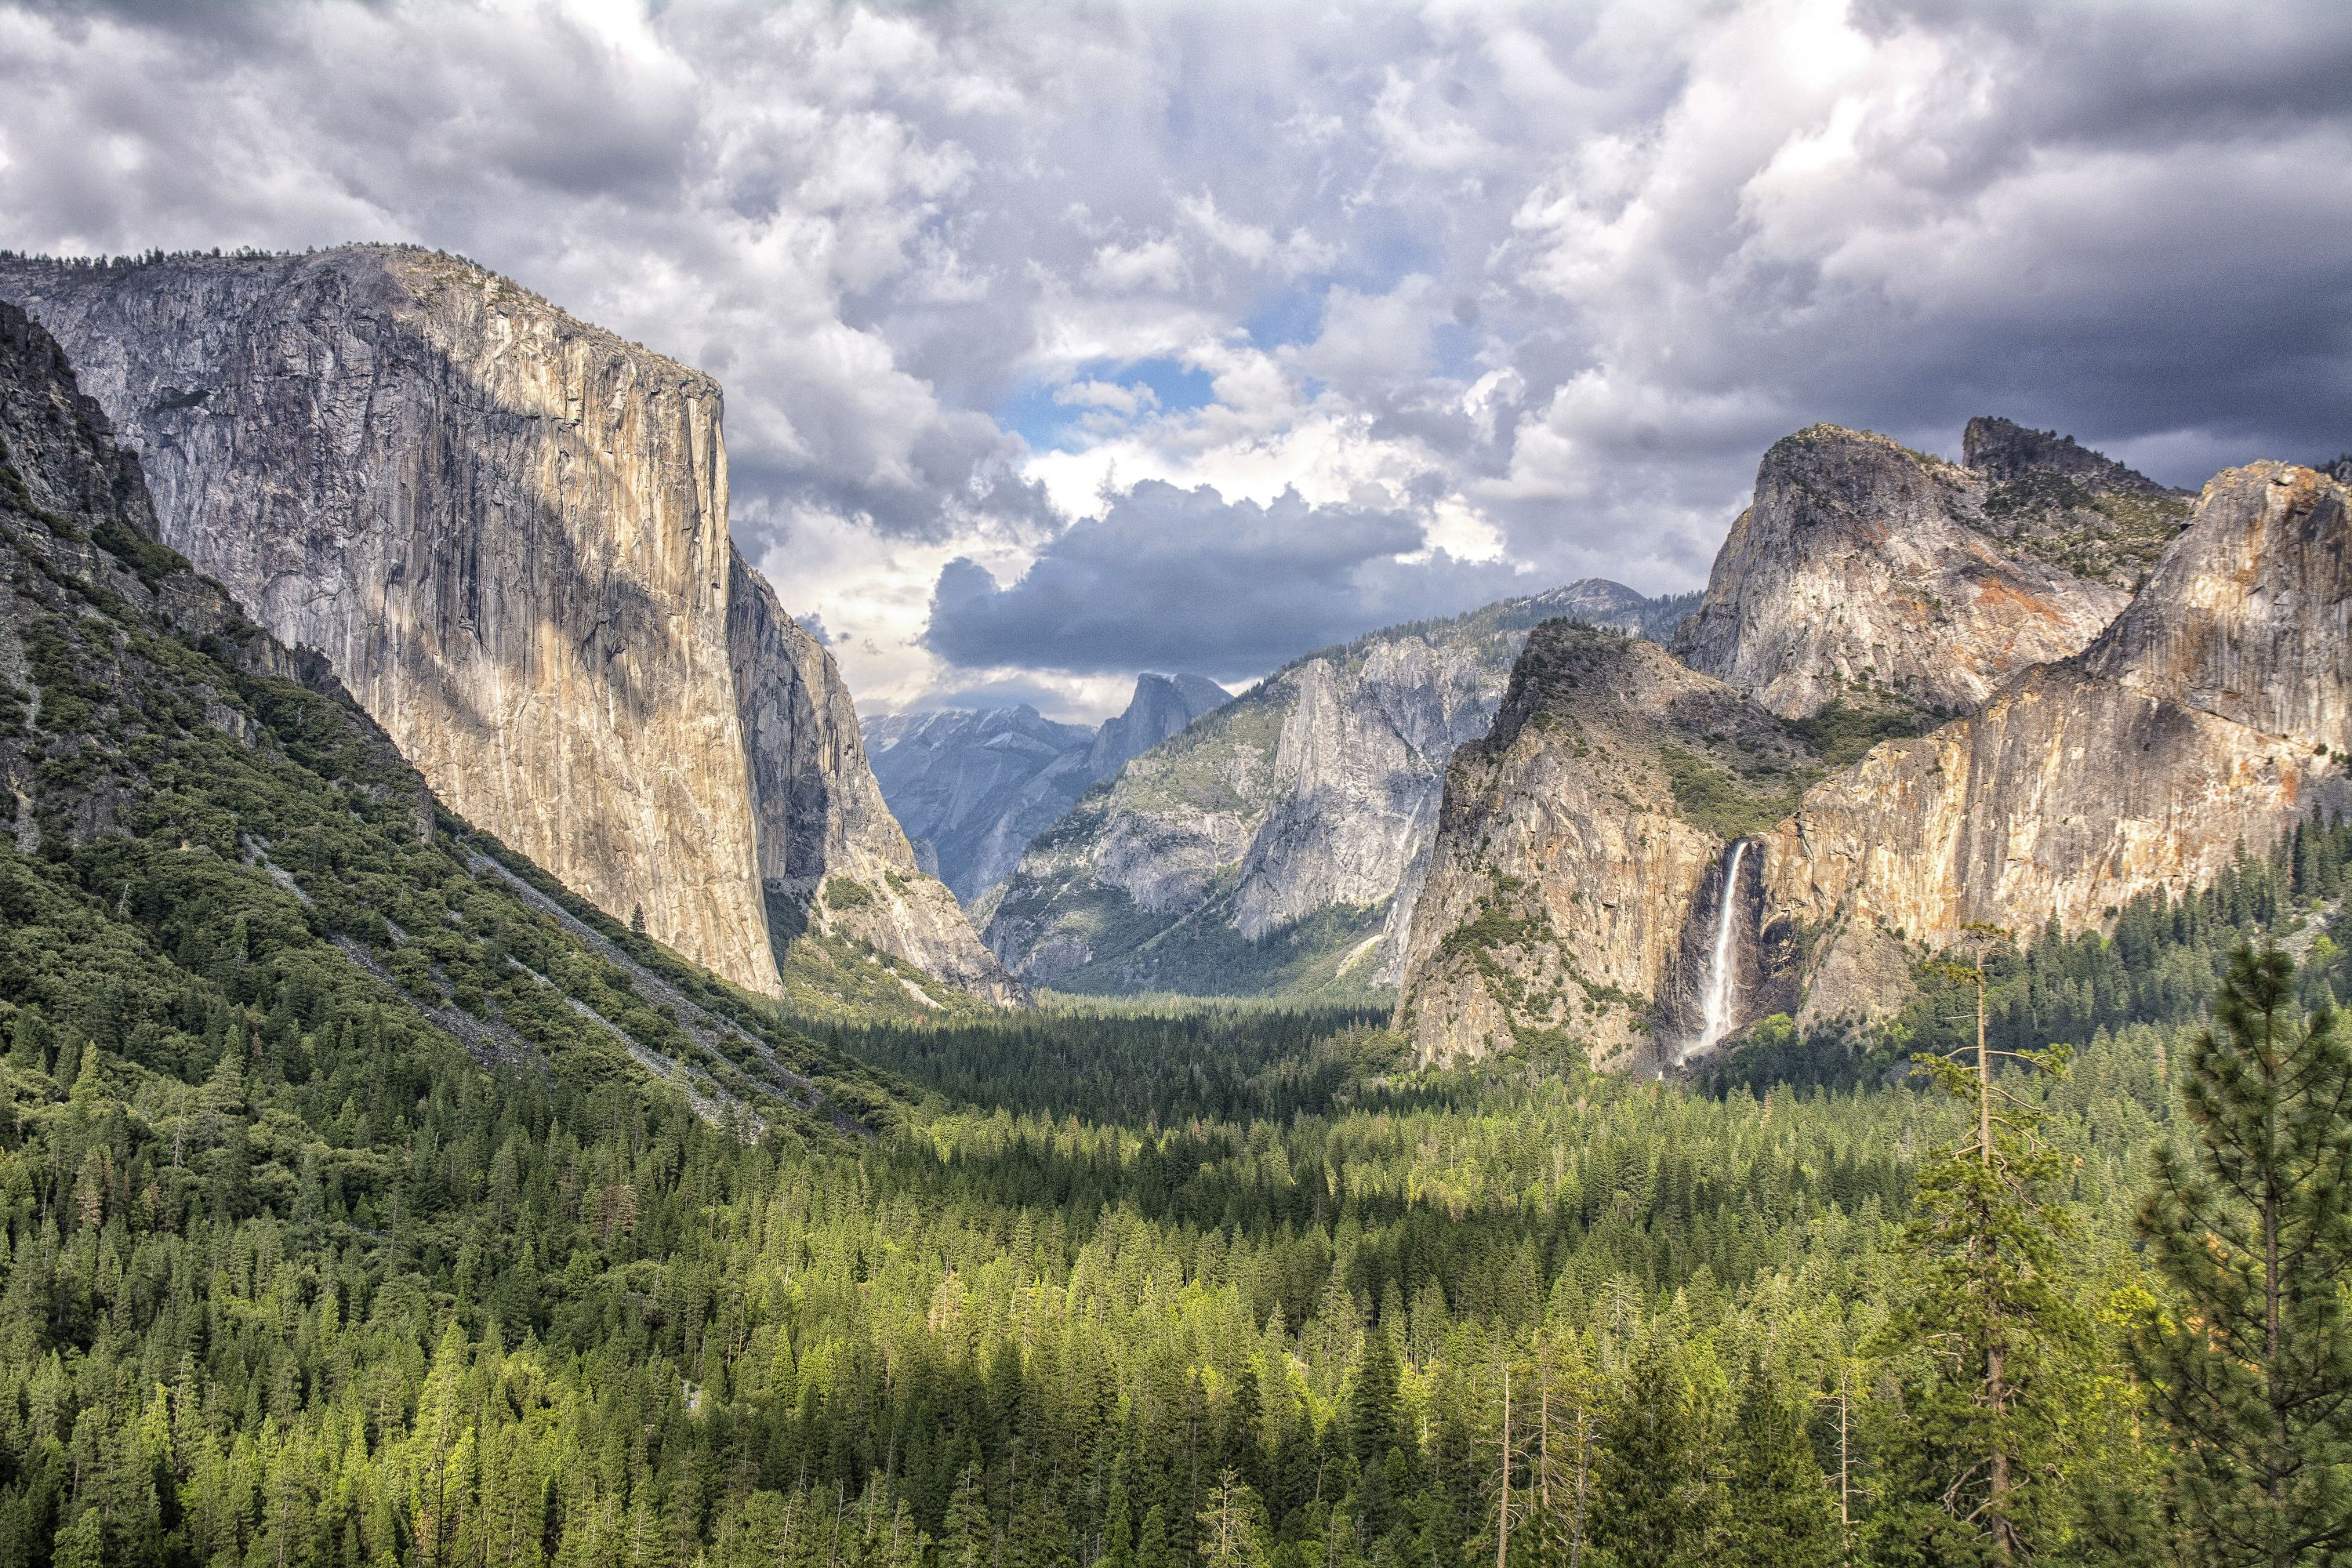 Yosemite, El Capitan on the left and Bridalveil Falls on the right. (Imagelibrary India Pvt Ltd: Mike Wilson/PA)